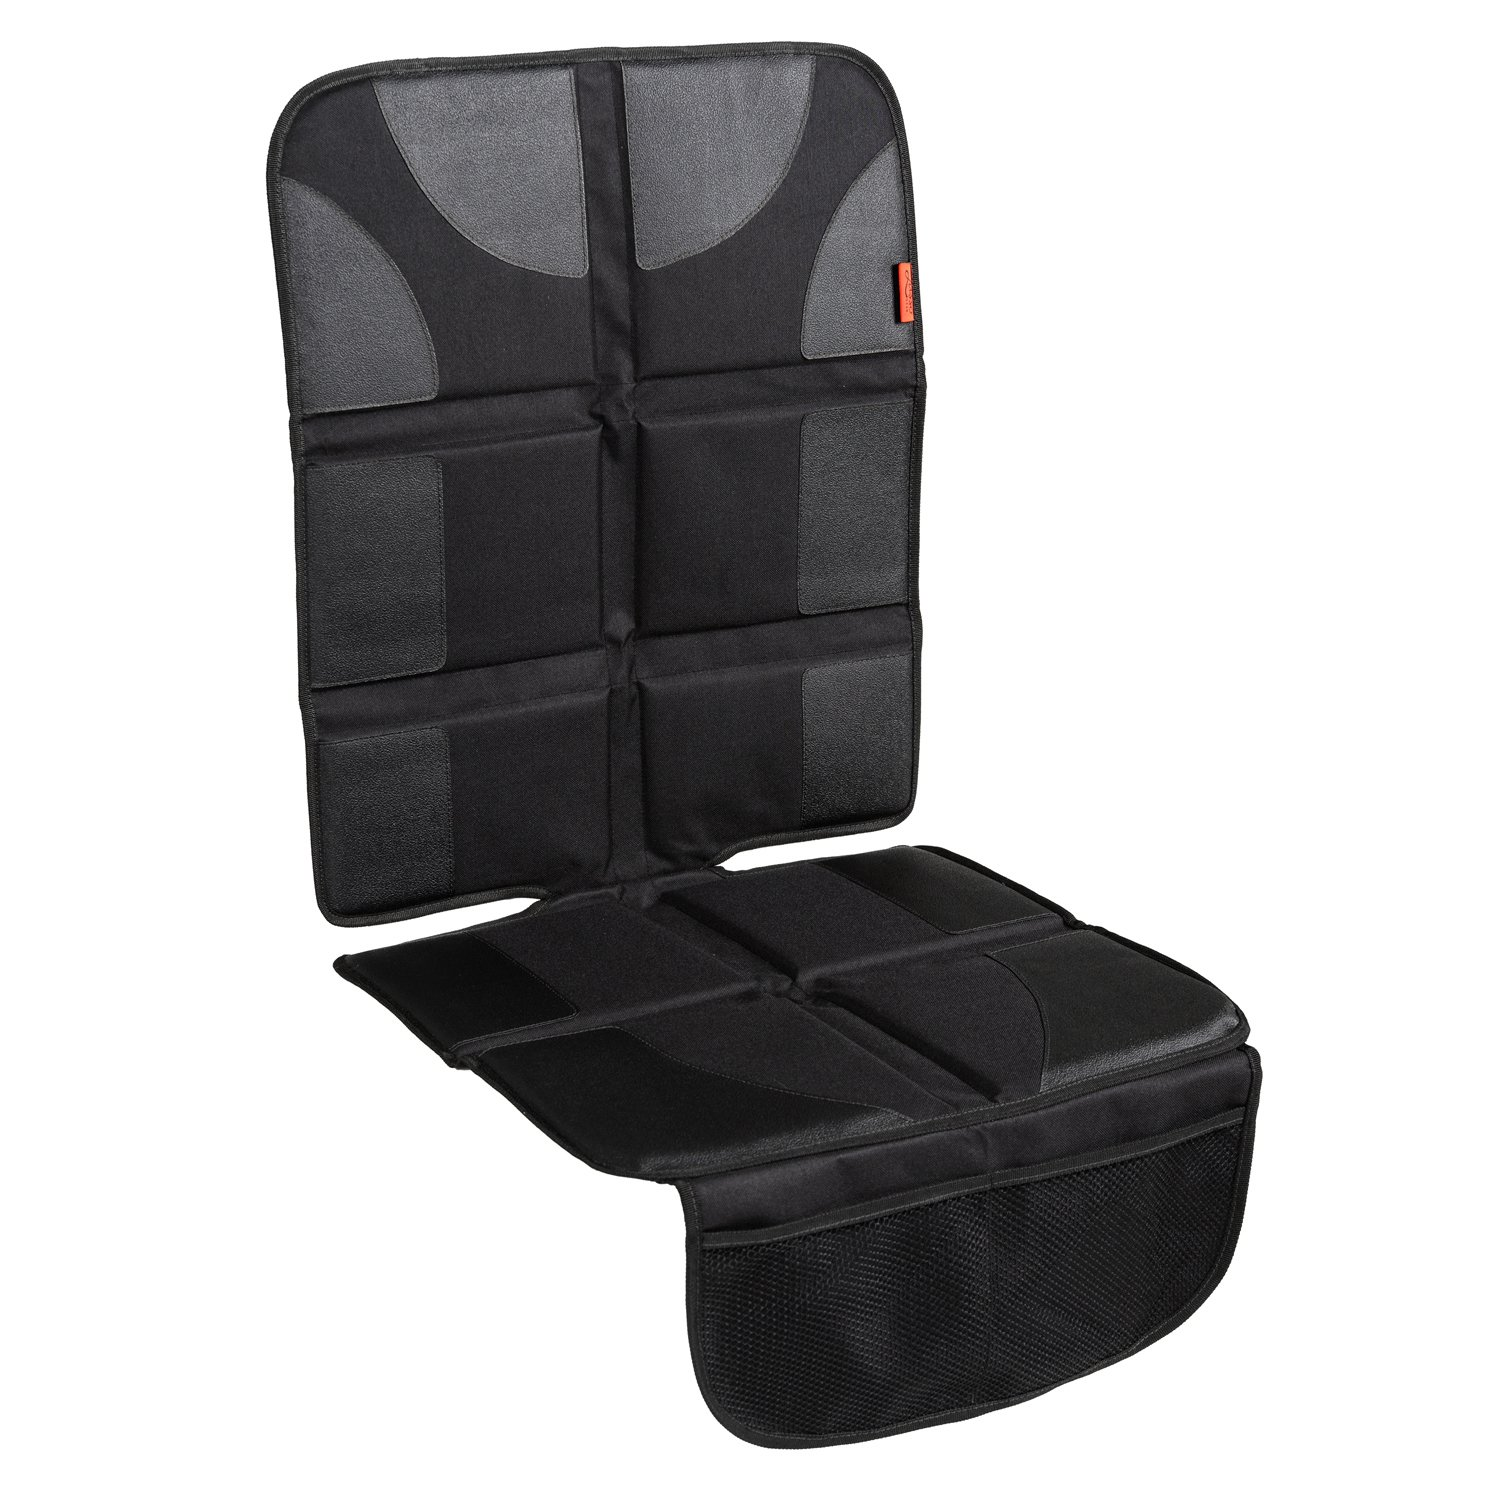 Car Seat Protector with Thickest Padding - Featuring XL Size (Best Coverage Available), Durable, Waterproof 600D Fabric, PVC Leather Reinforced Corners & 2 Large Pockets for Handy Storage Lusso Gear